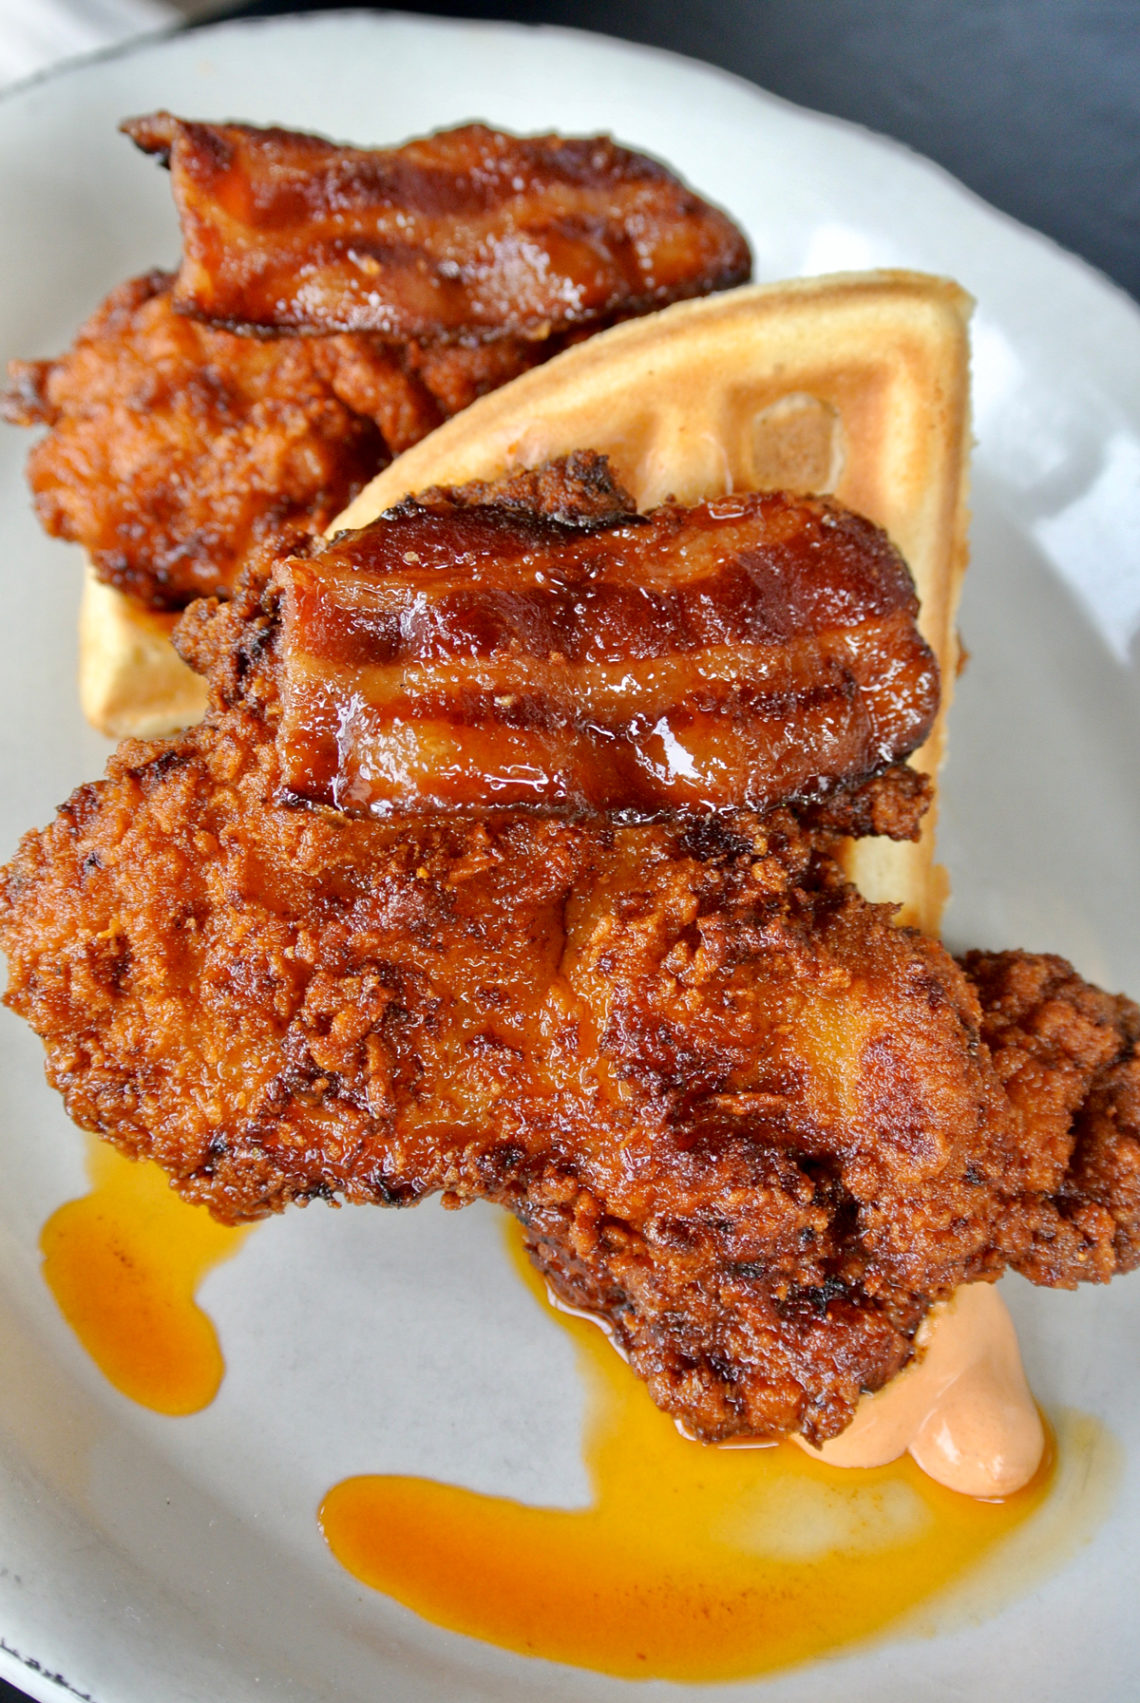 Eating House Miami- Hot Chicken and Waffles with Bacon